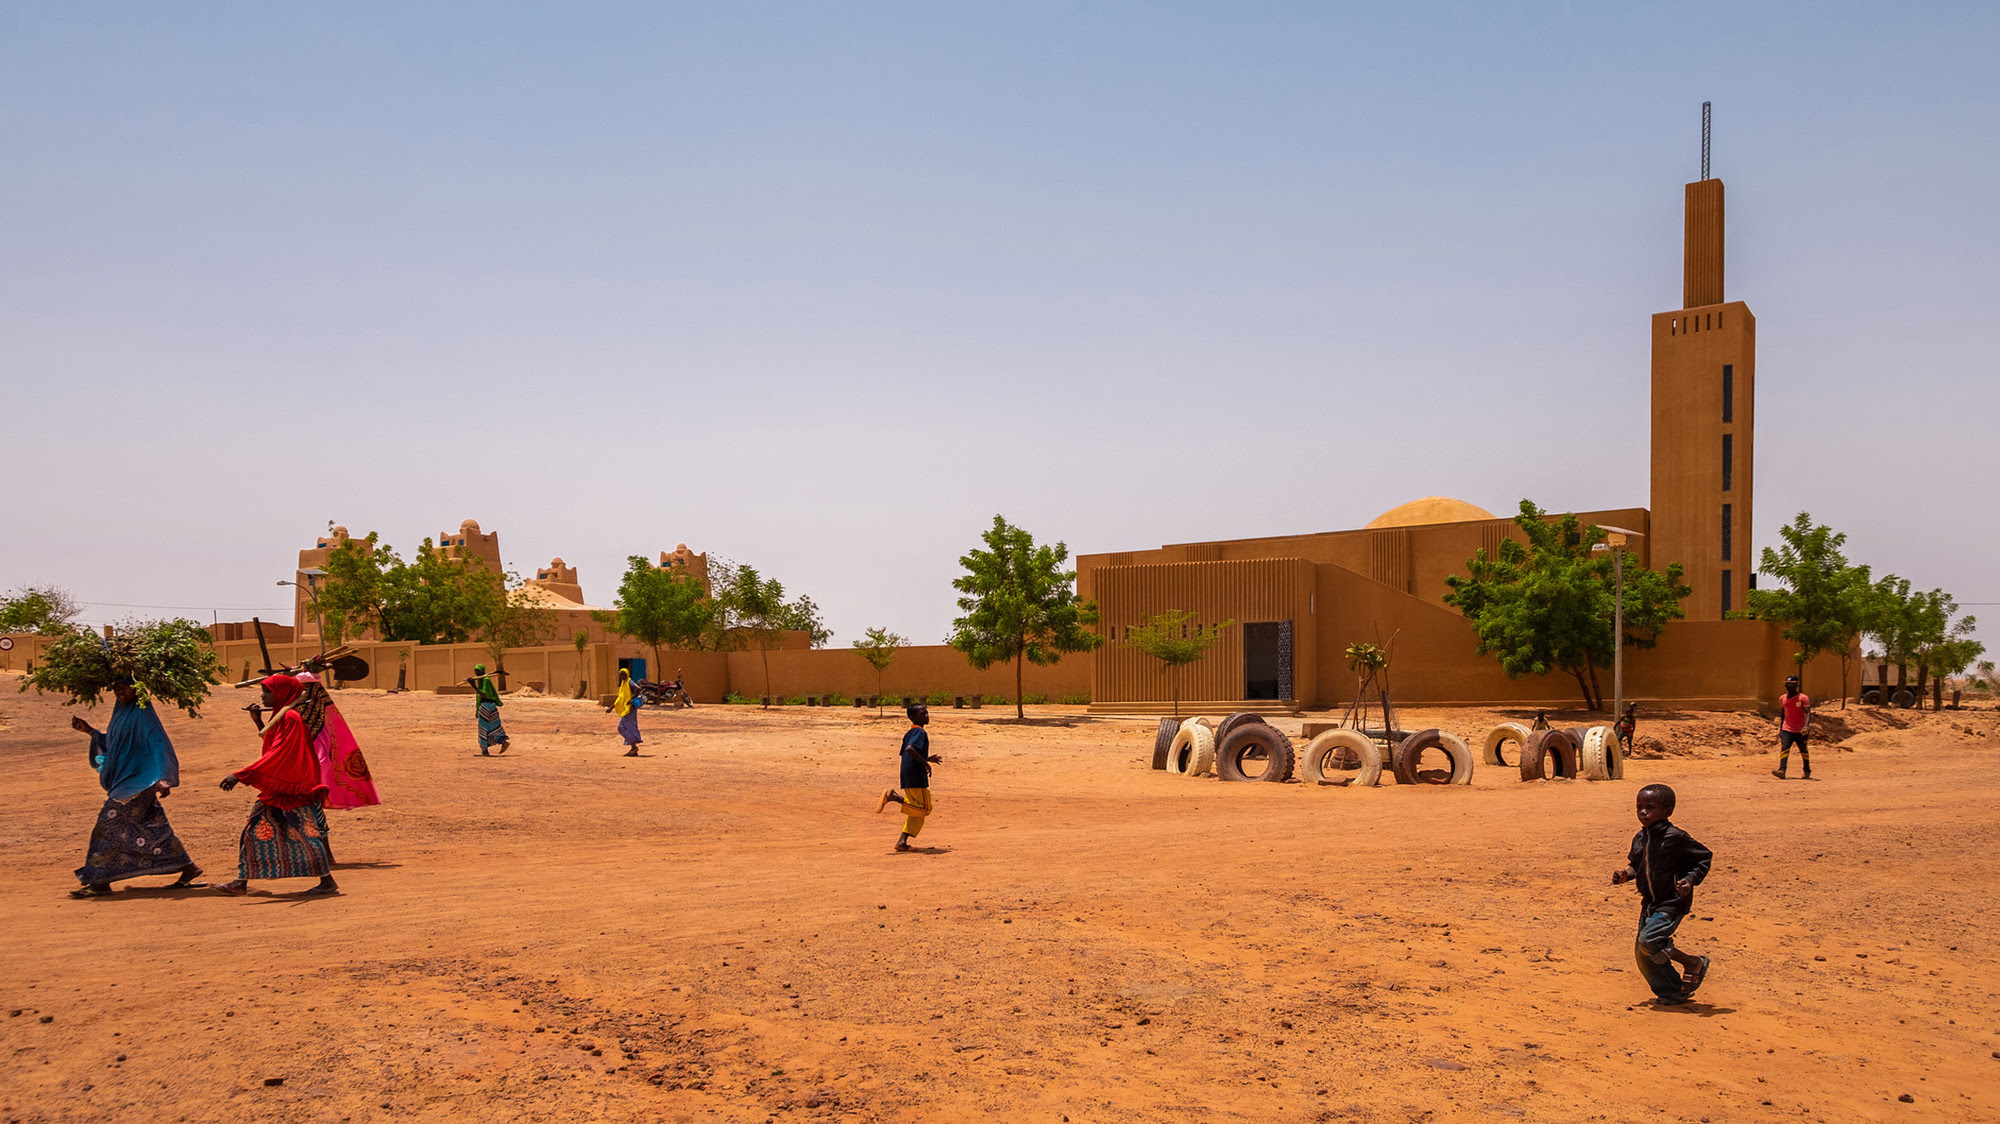 Photo of a library and community center in Niger